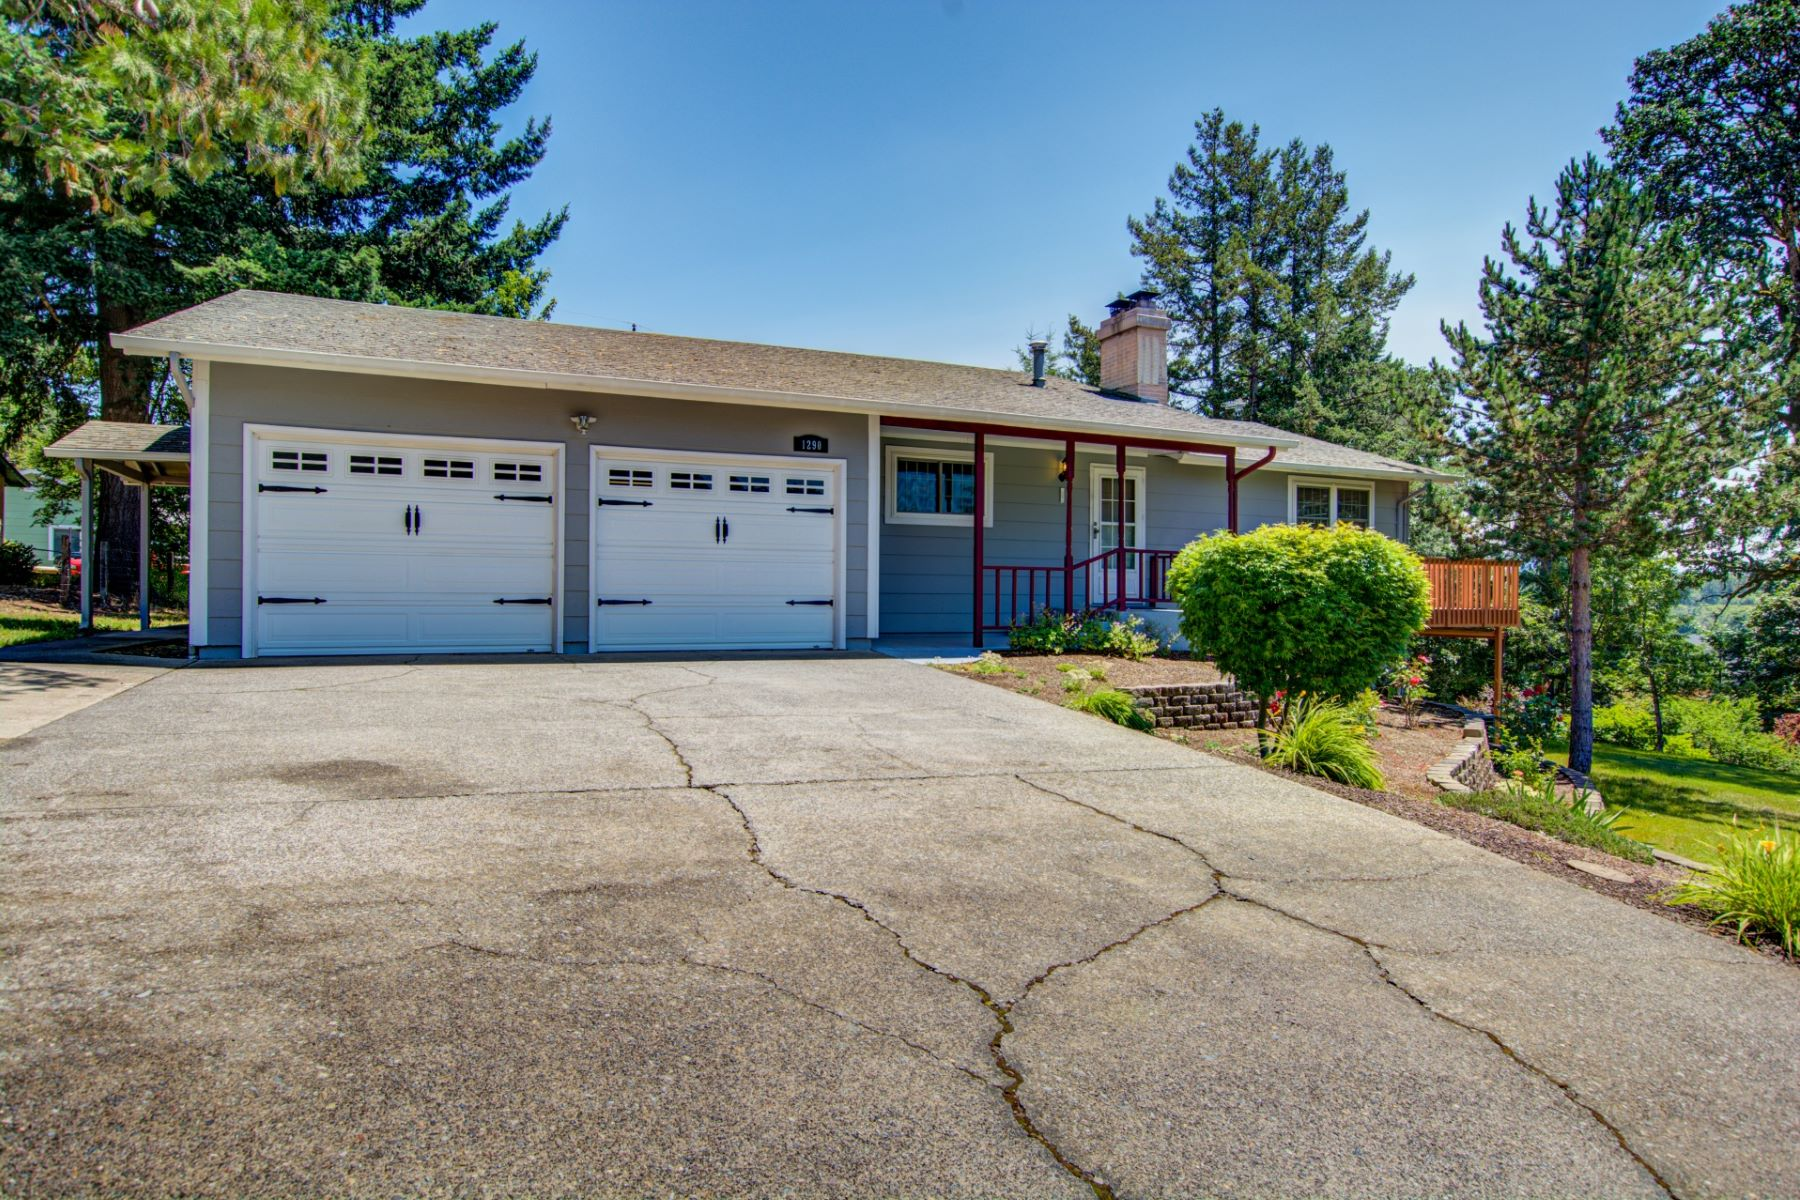 Single Family Homes for Active at Renovated Ranch Home in Stayton 1290 Highland Drive Stayton, Oregon 97383 United States